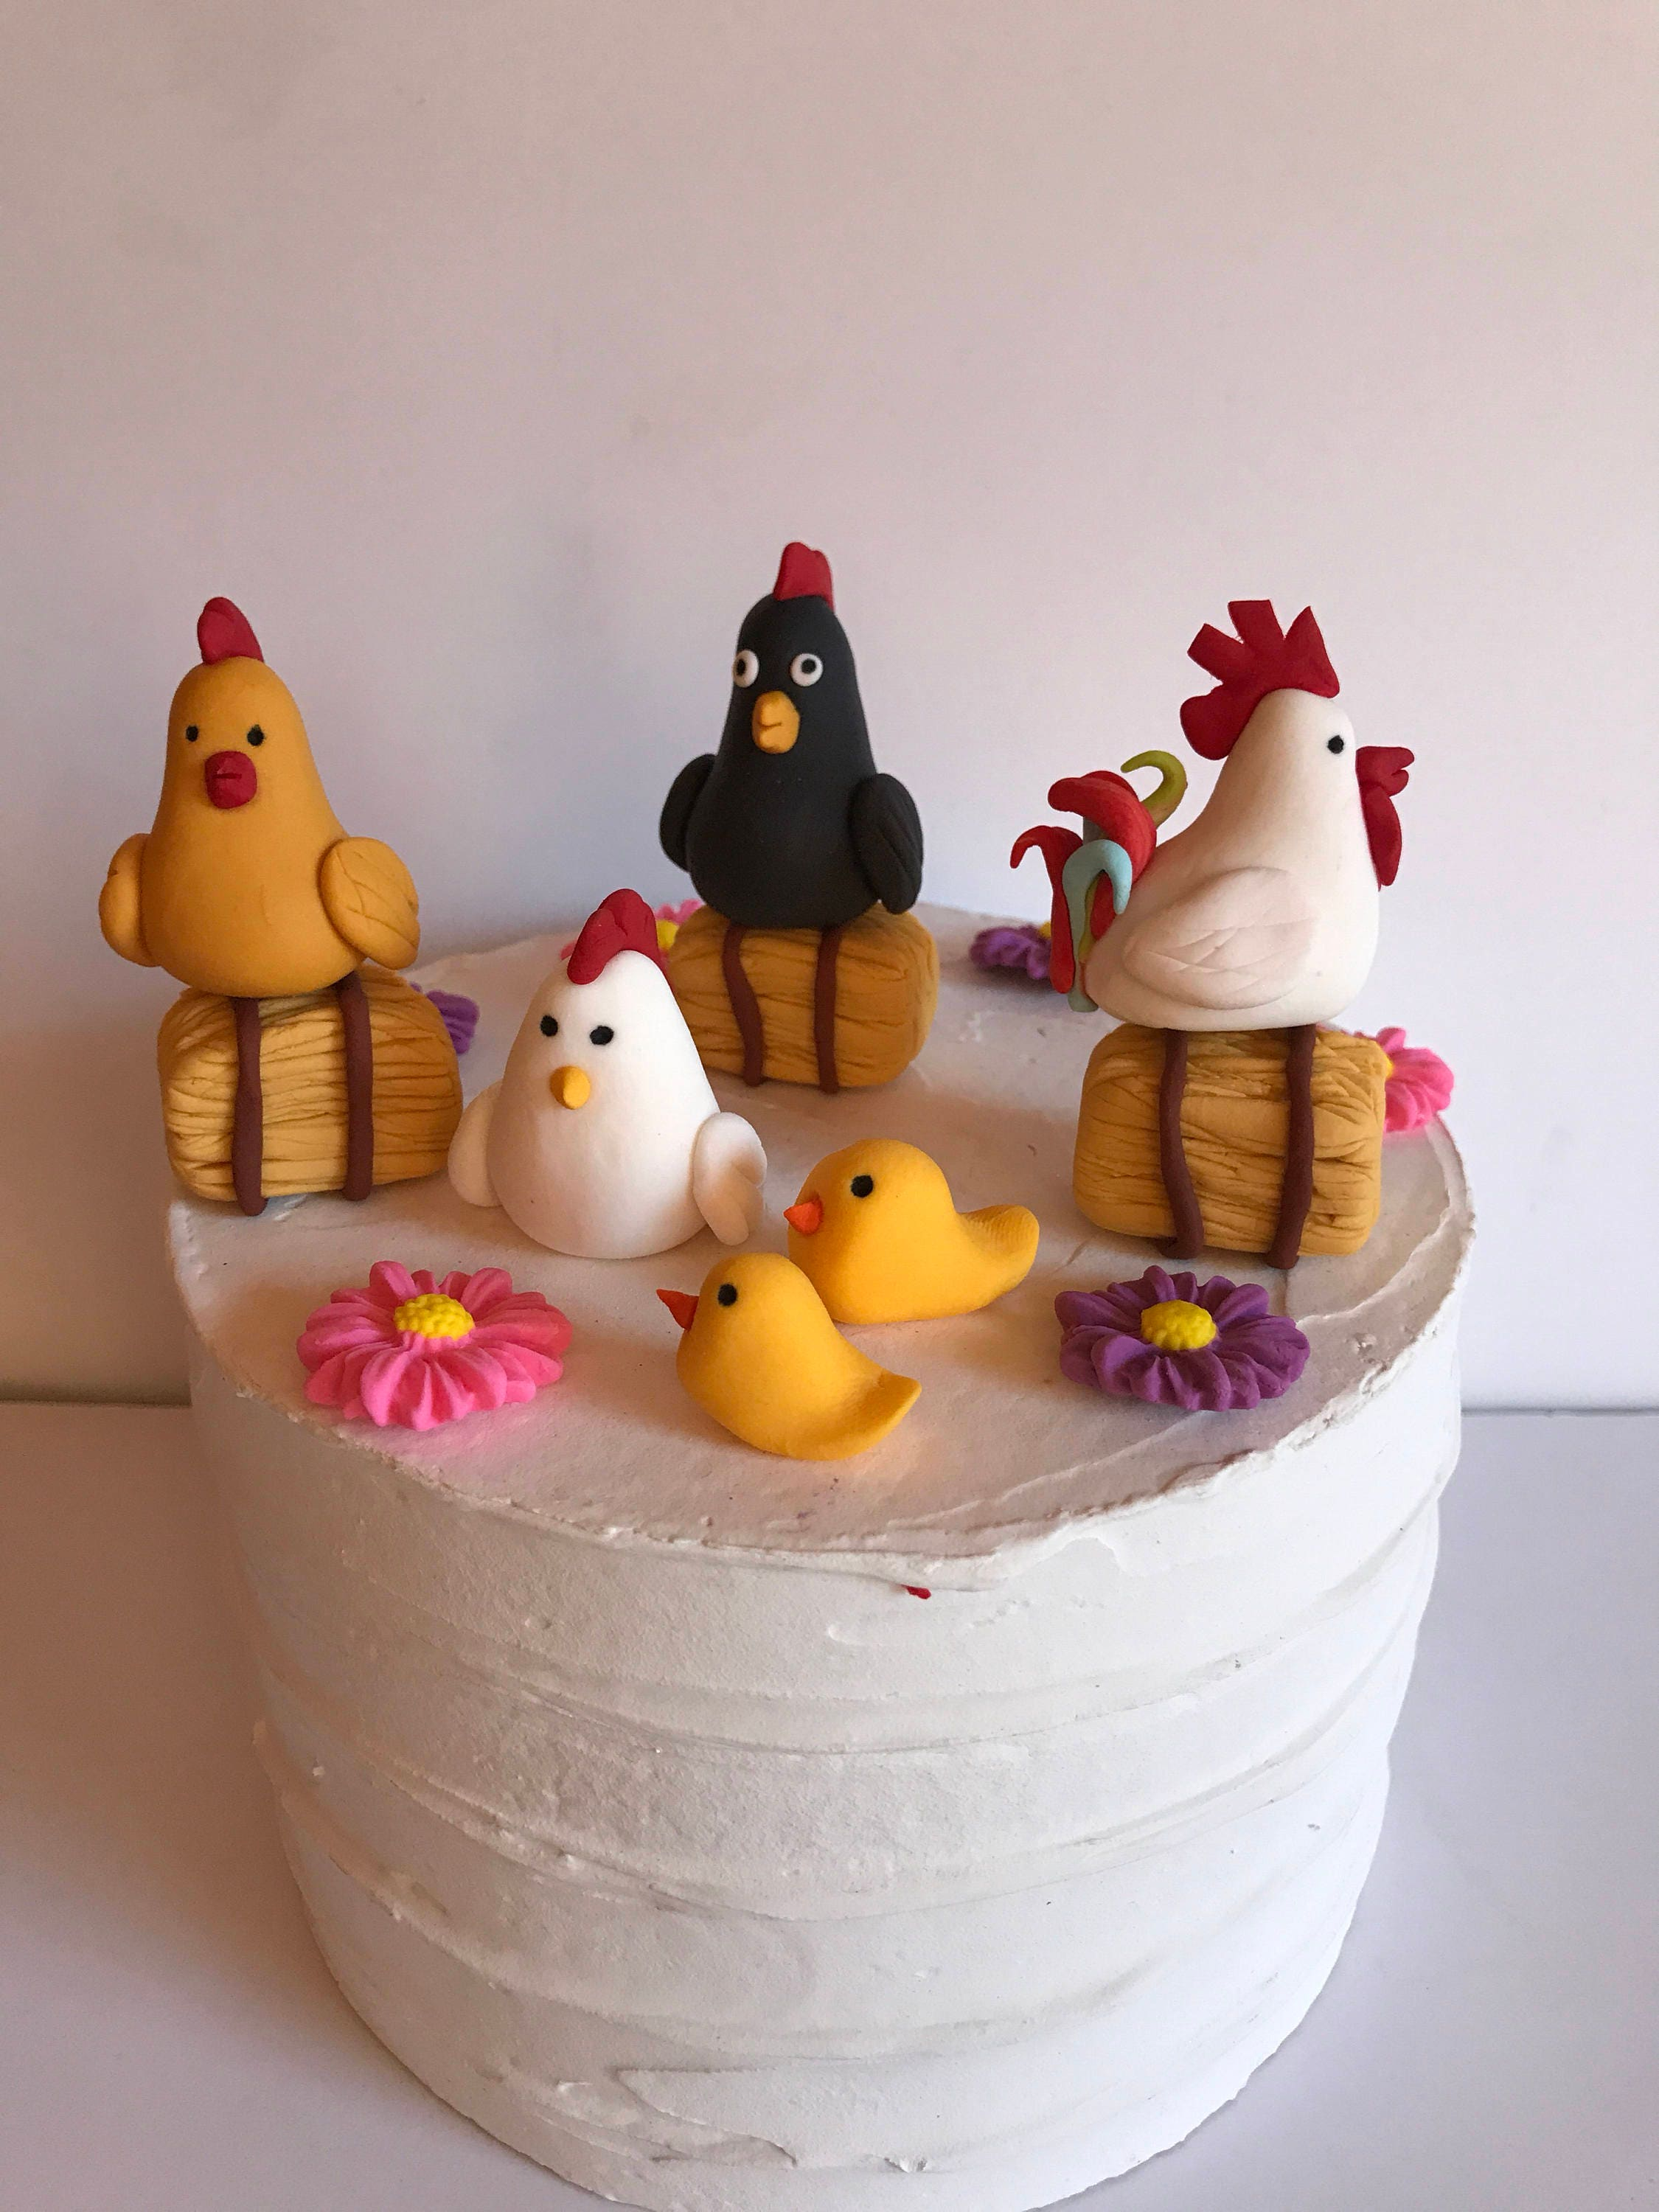 Fondant Chicken Coop Cake Decoration Retirement Party Birthday Cake